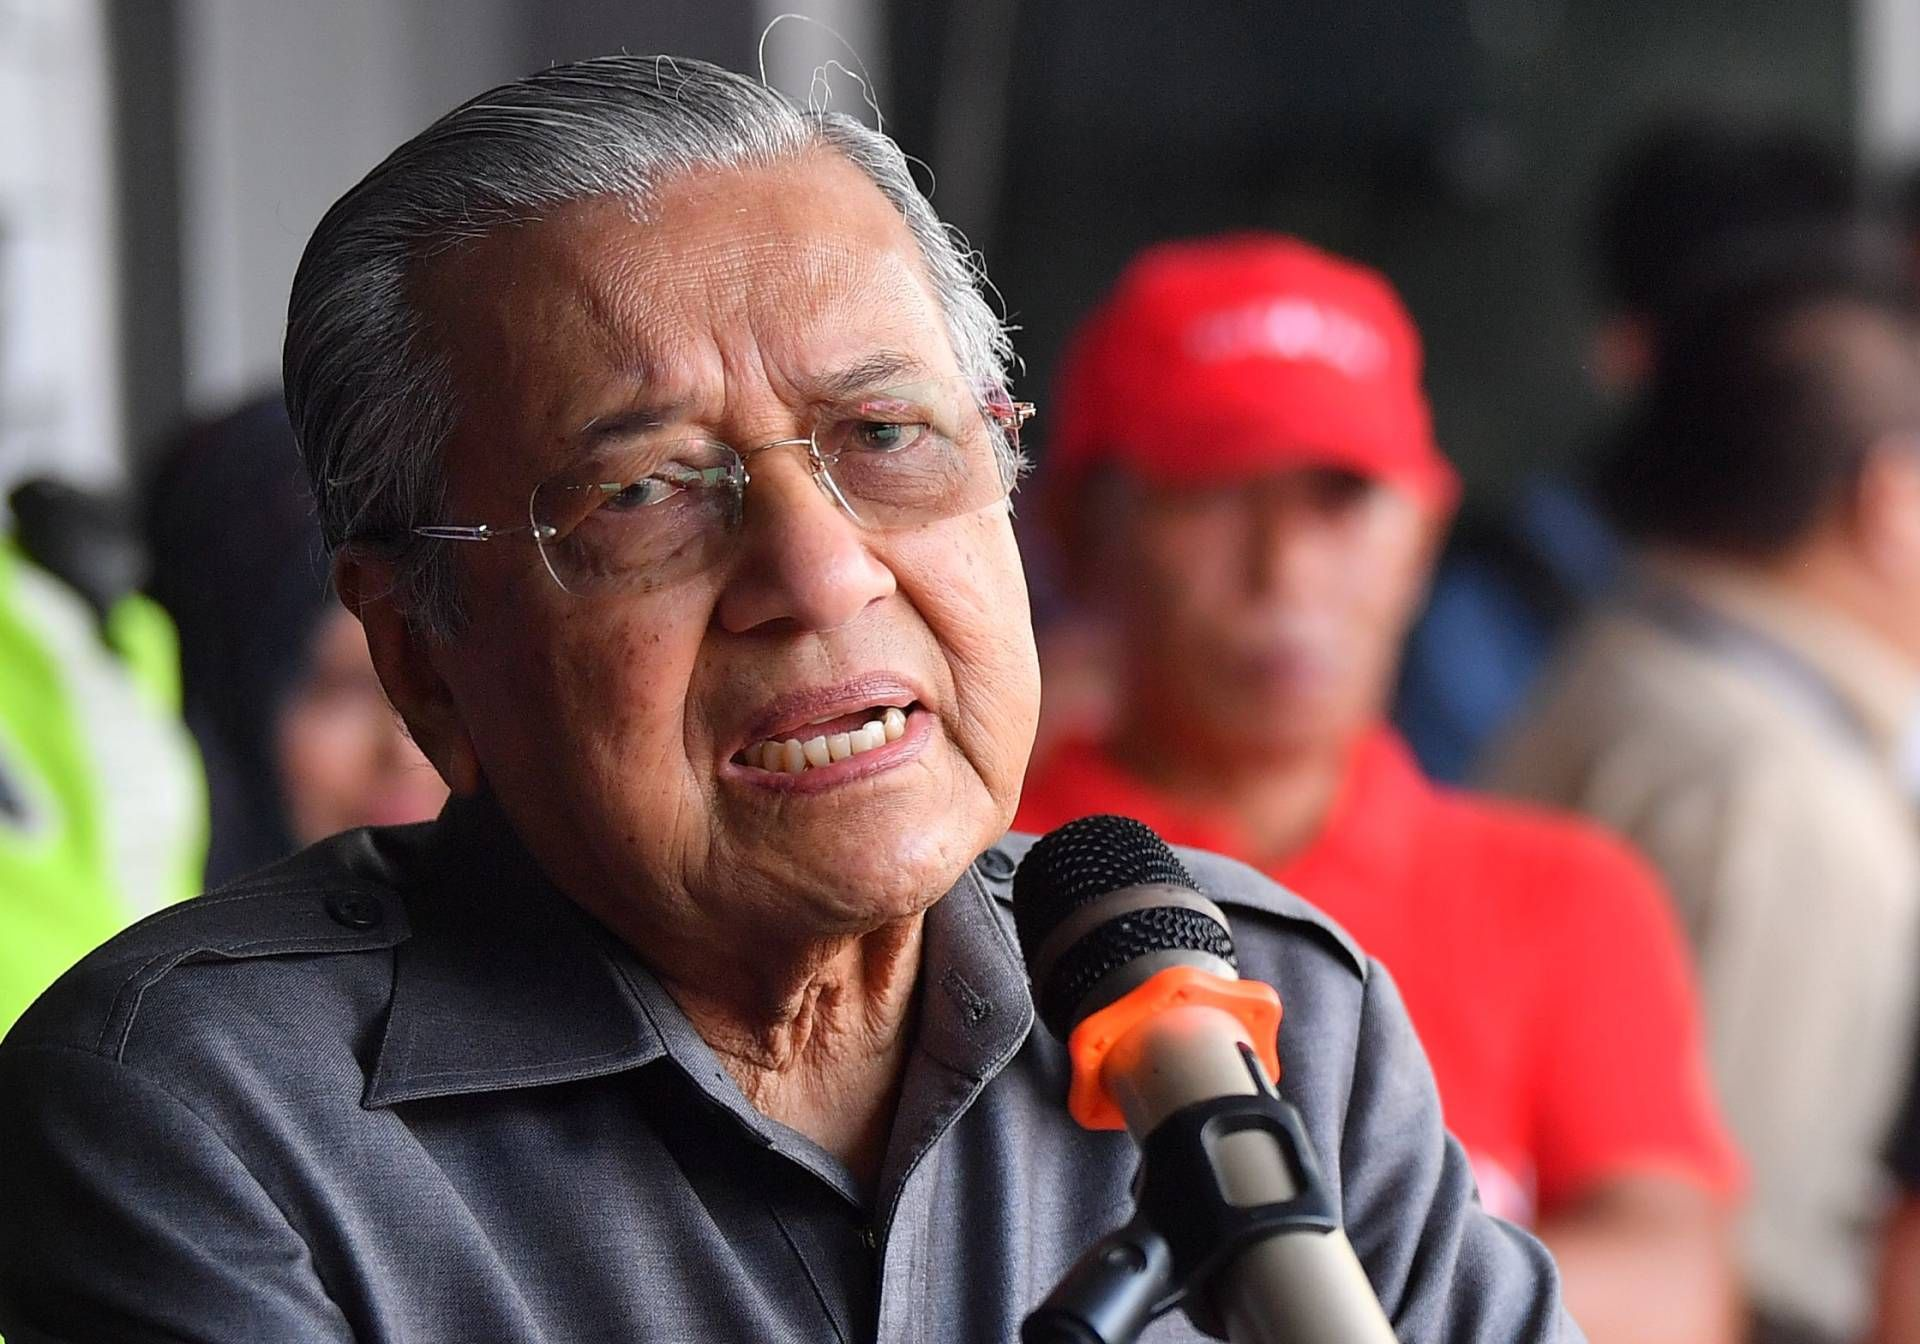 Dr M: Why did the US downgrade M'sia's civil aviation authority?